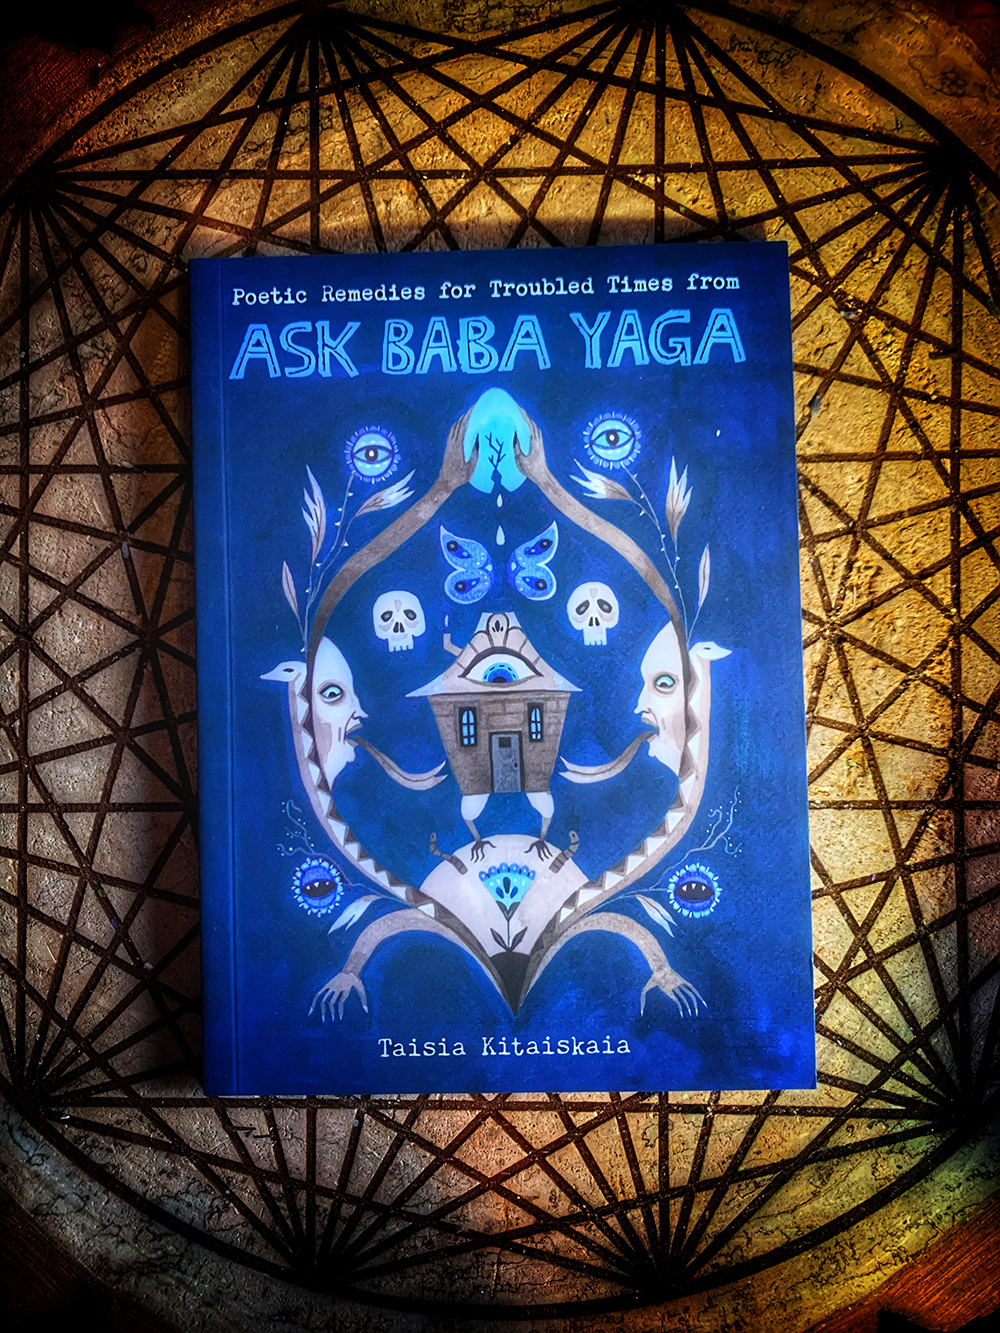 Ask Baba Yaga: Poetic Remedies for Troubled Times